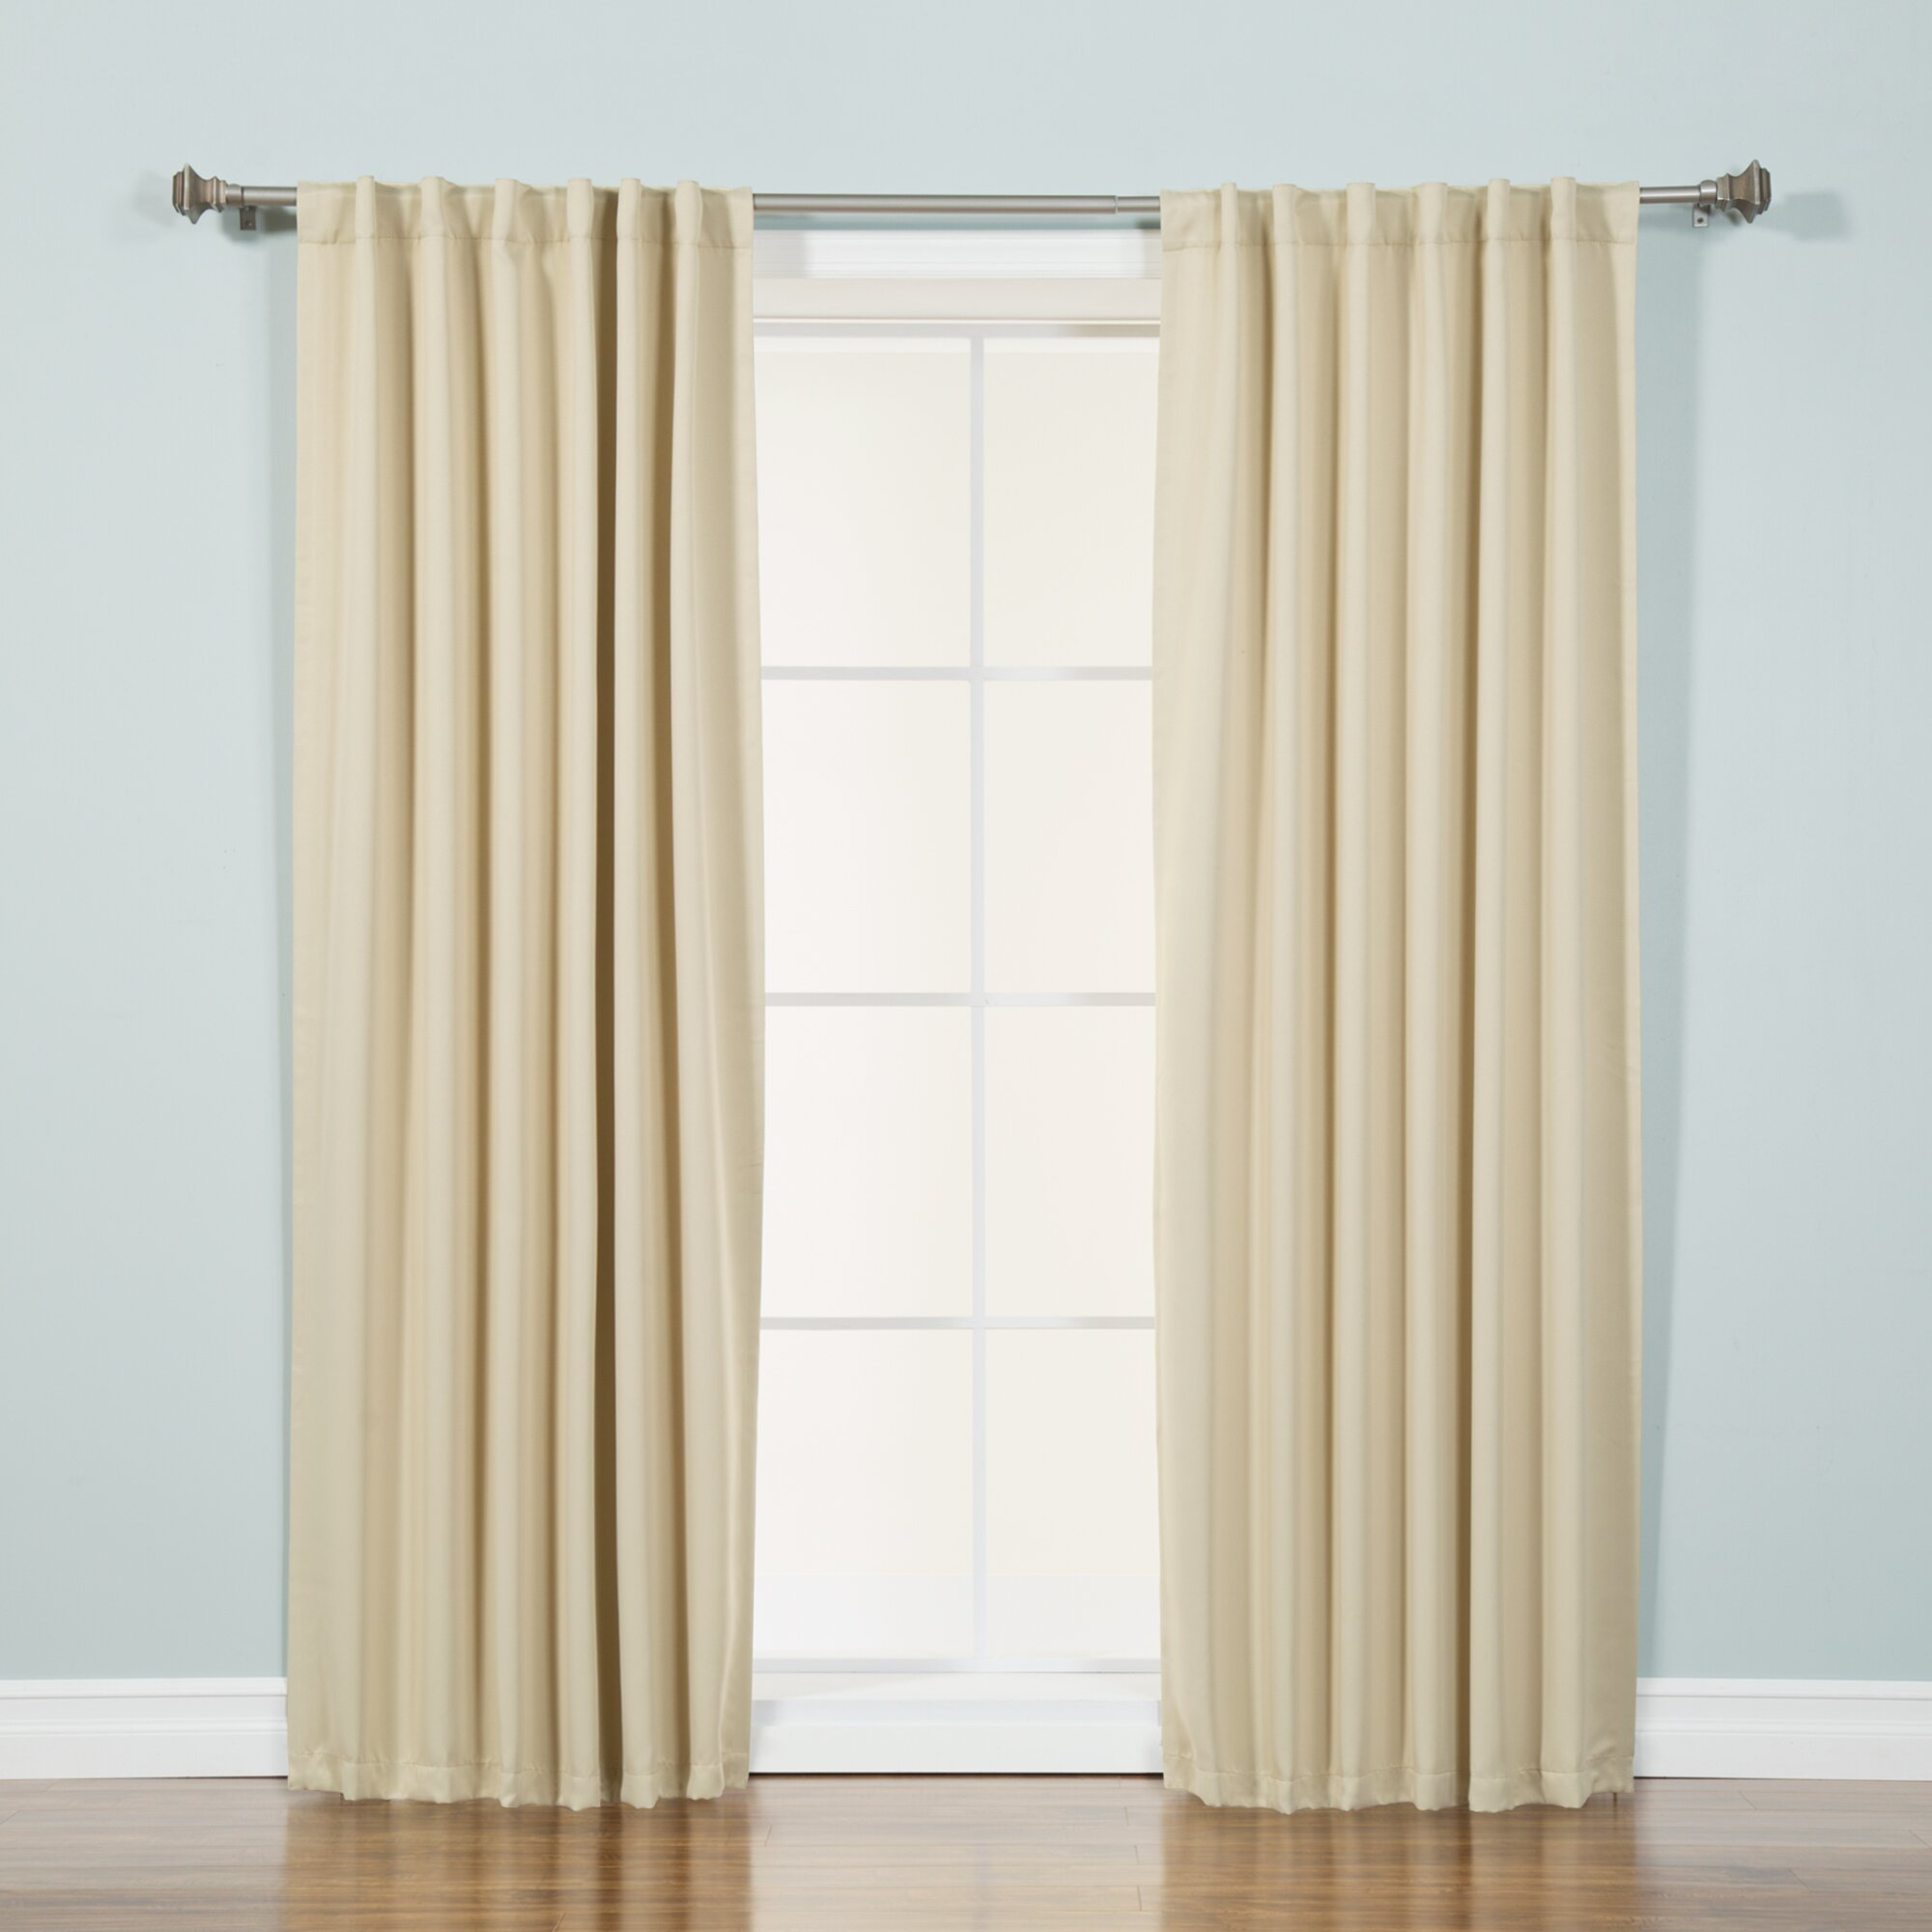 Thermal Blackout Curtains Bing Images